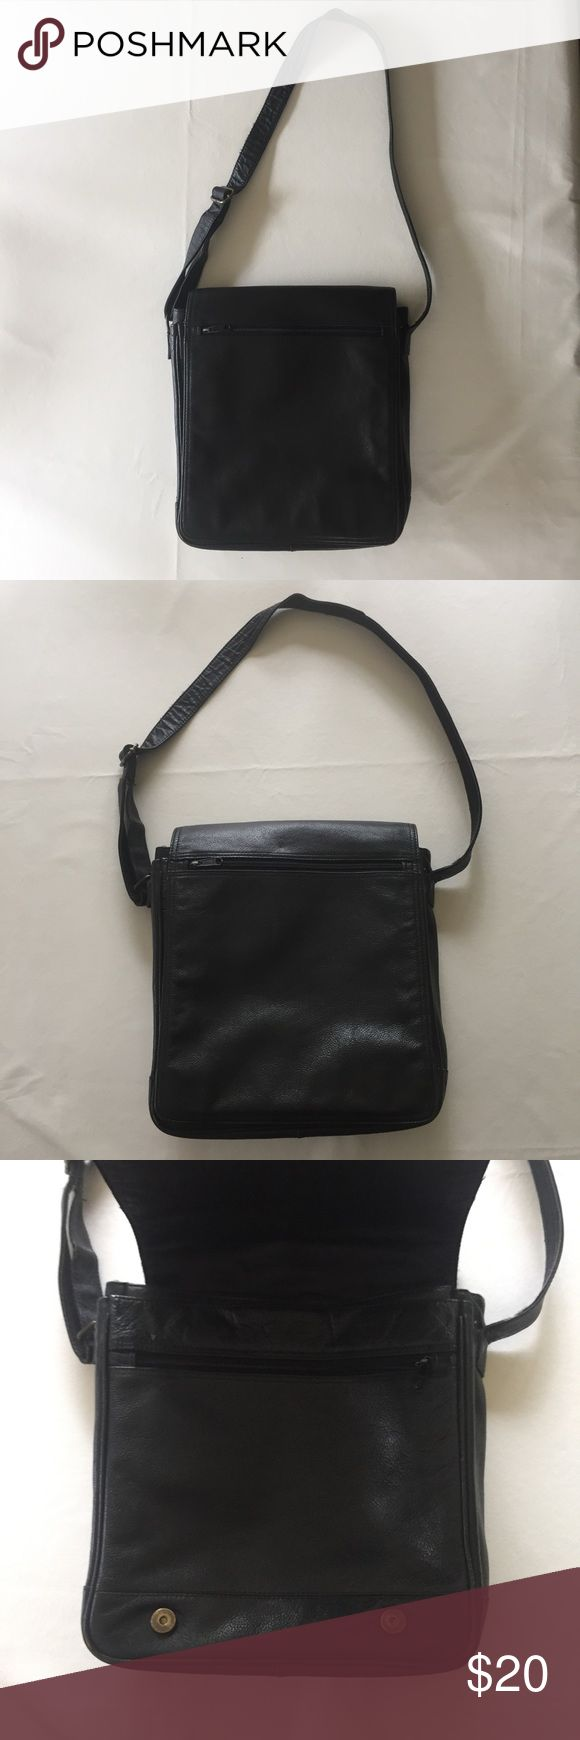 Vintage Wilson's leather Satchel Black leather cross body satchel. Magnetic double snap closure with interior pockets and sleeve for small laptop or tablet. Black leather, only looks better with age, little wear on edge shown in photo. Open to offers and bundles. Wilsons Leather Bags Crossbody Bags